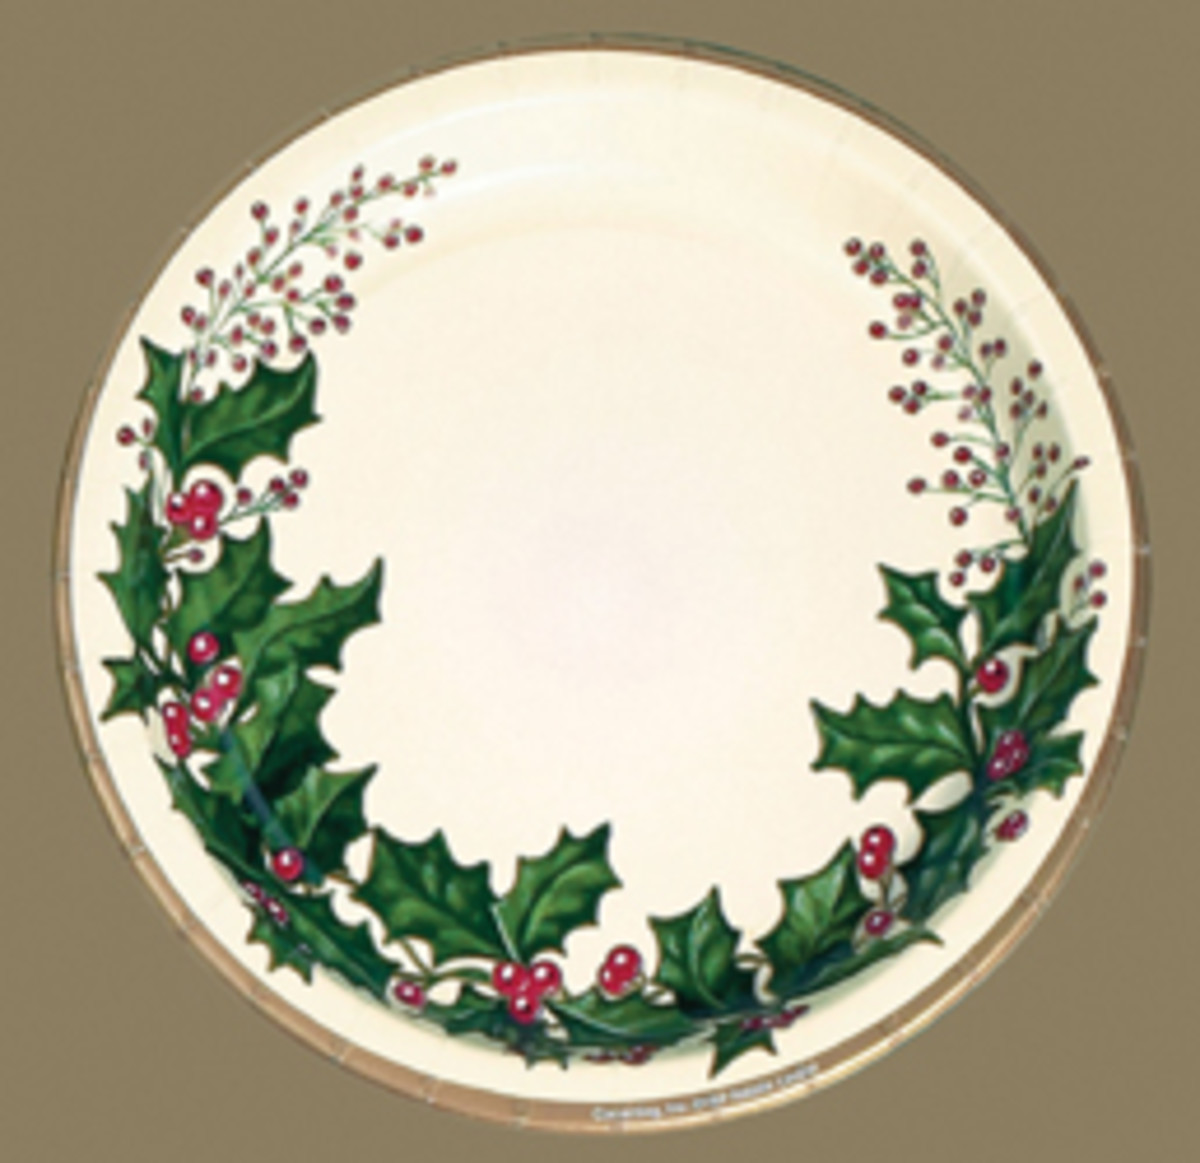 Holly Christmas Dinner Plate